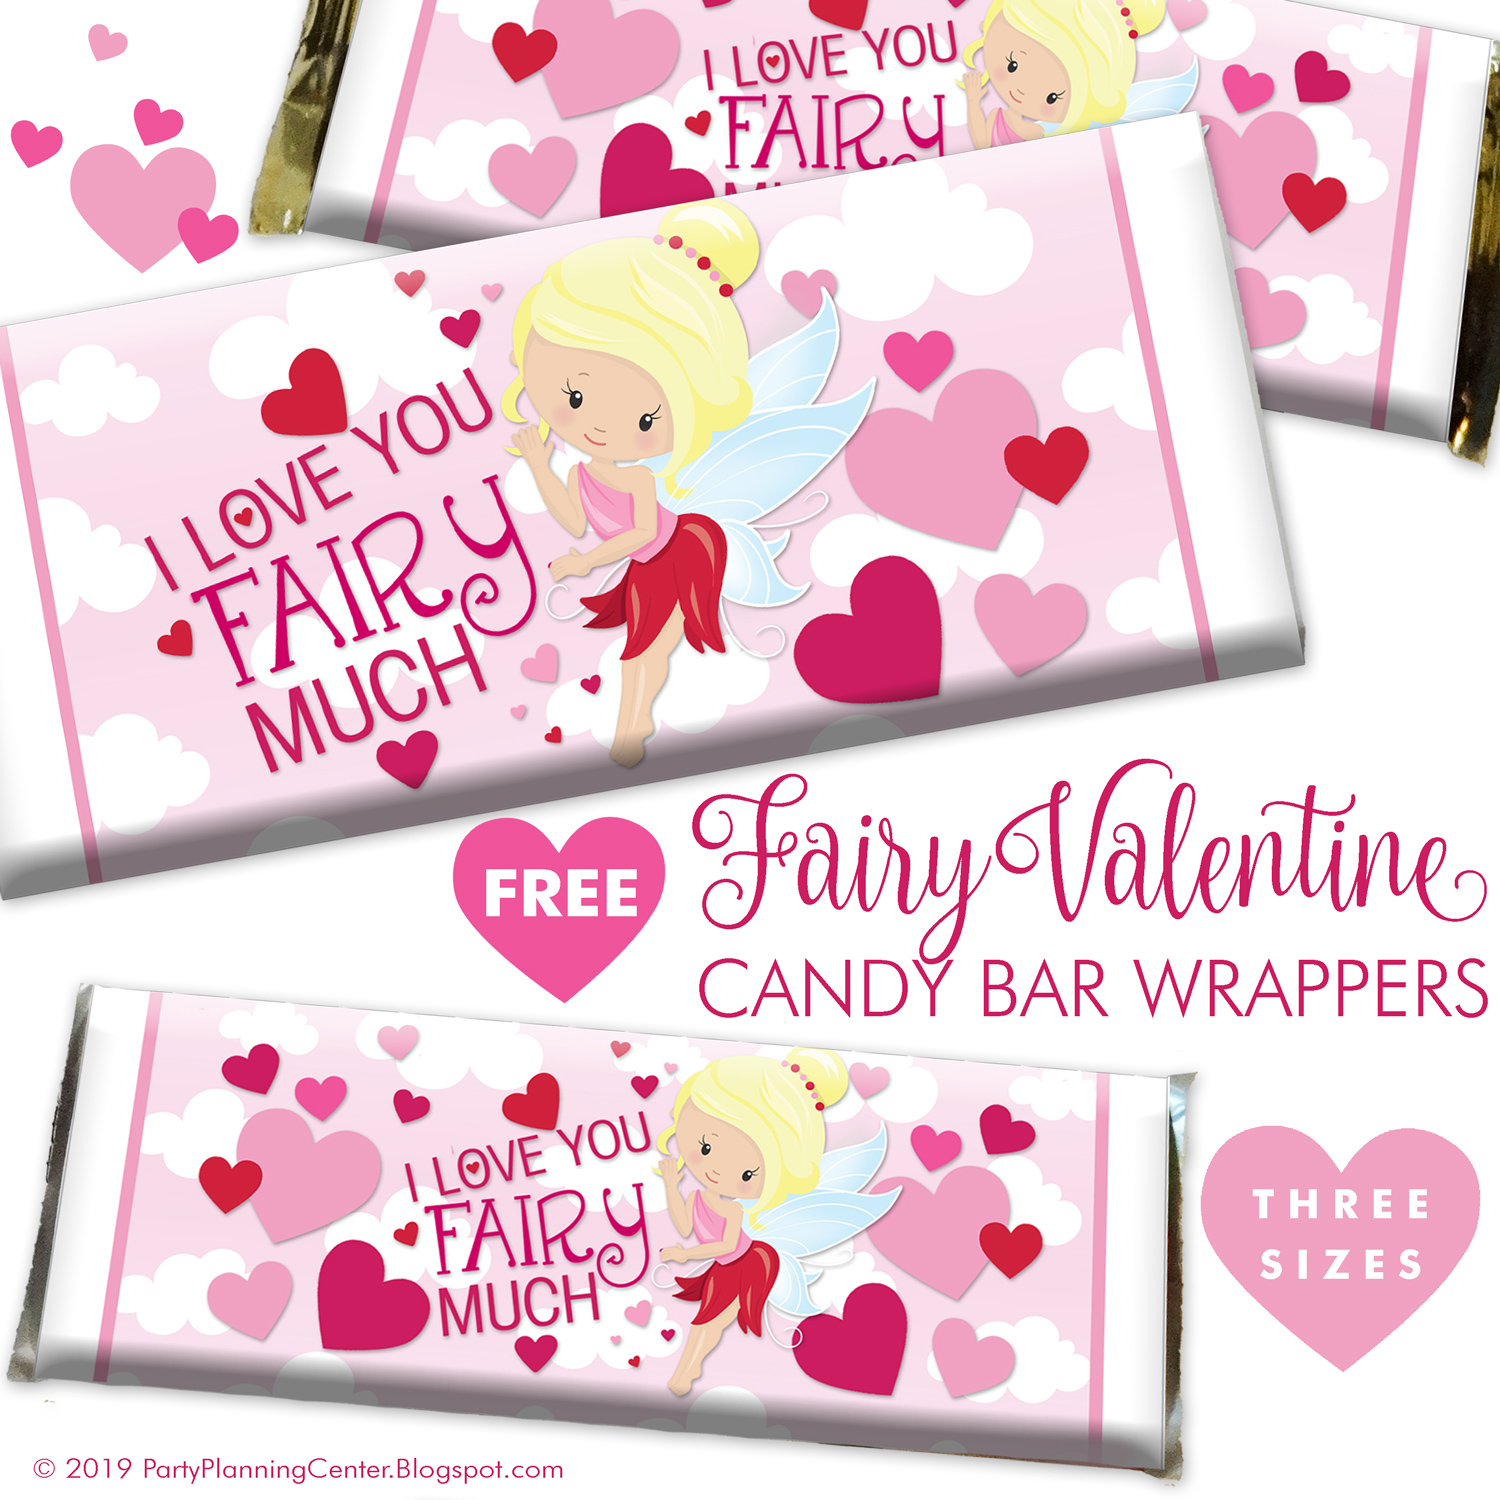 graphic regarding Free Printable Candy Bar Wrappers named Cant obtain subsution for tag [posting.overall body]--\u003e Free of charge Fairy